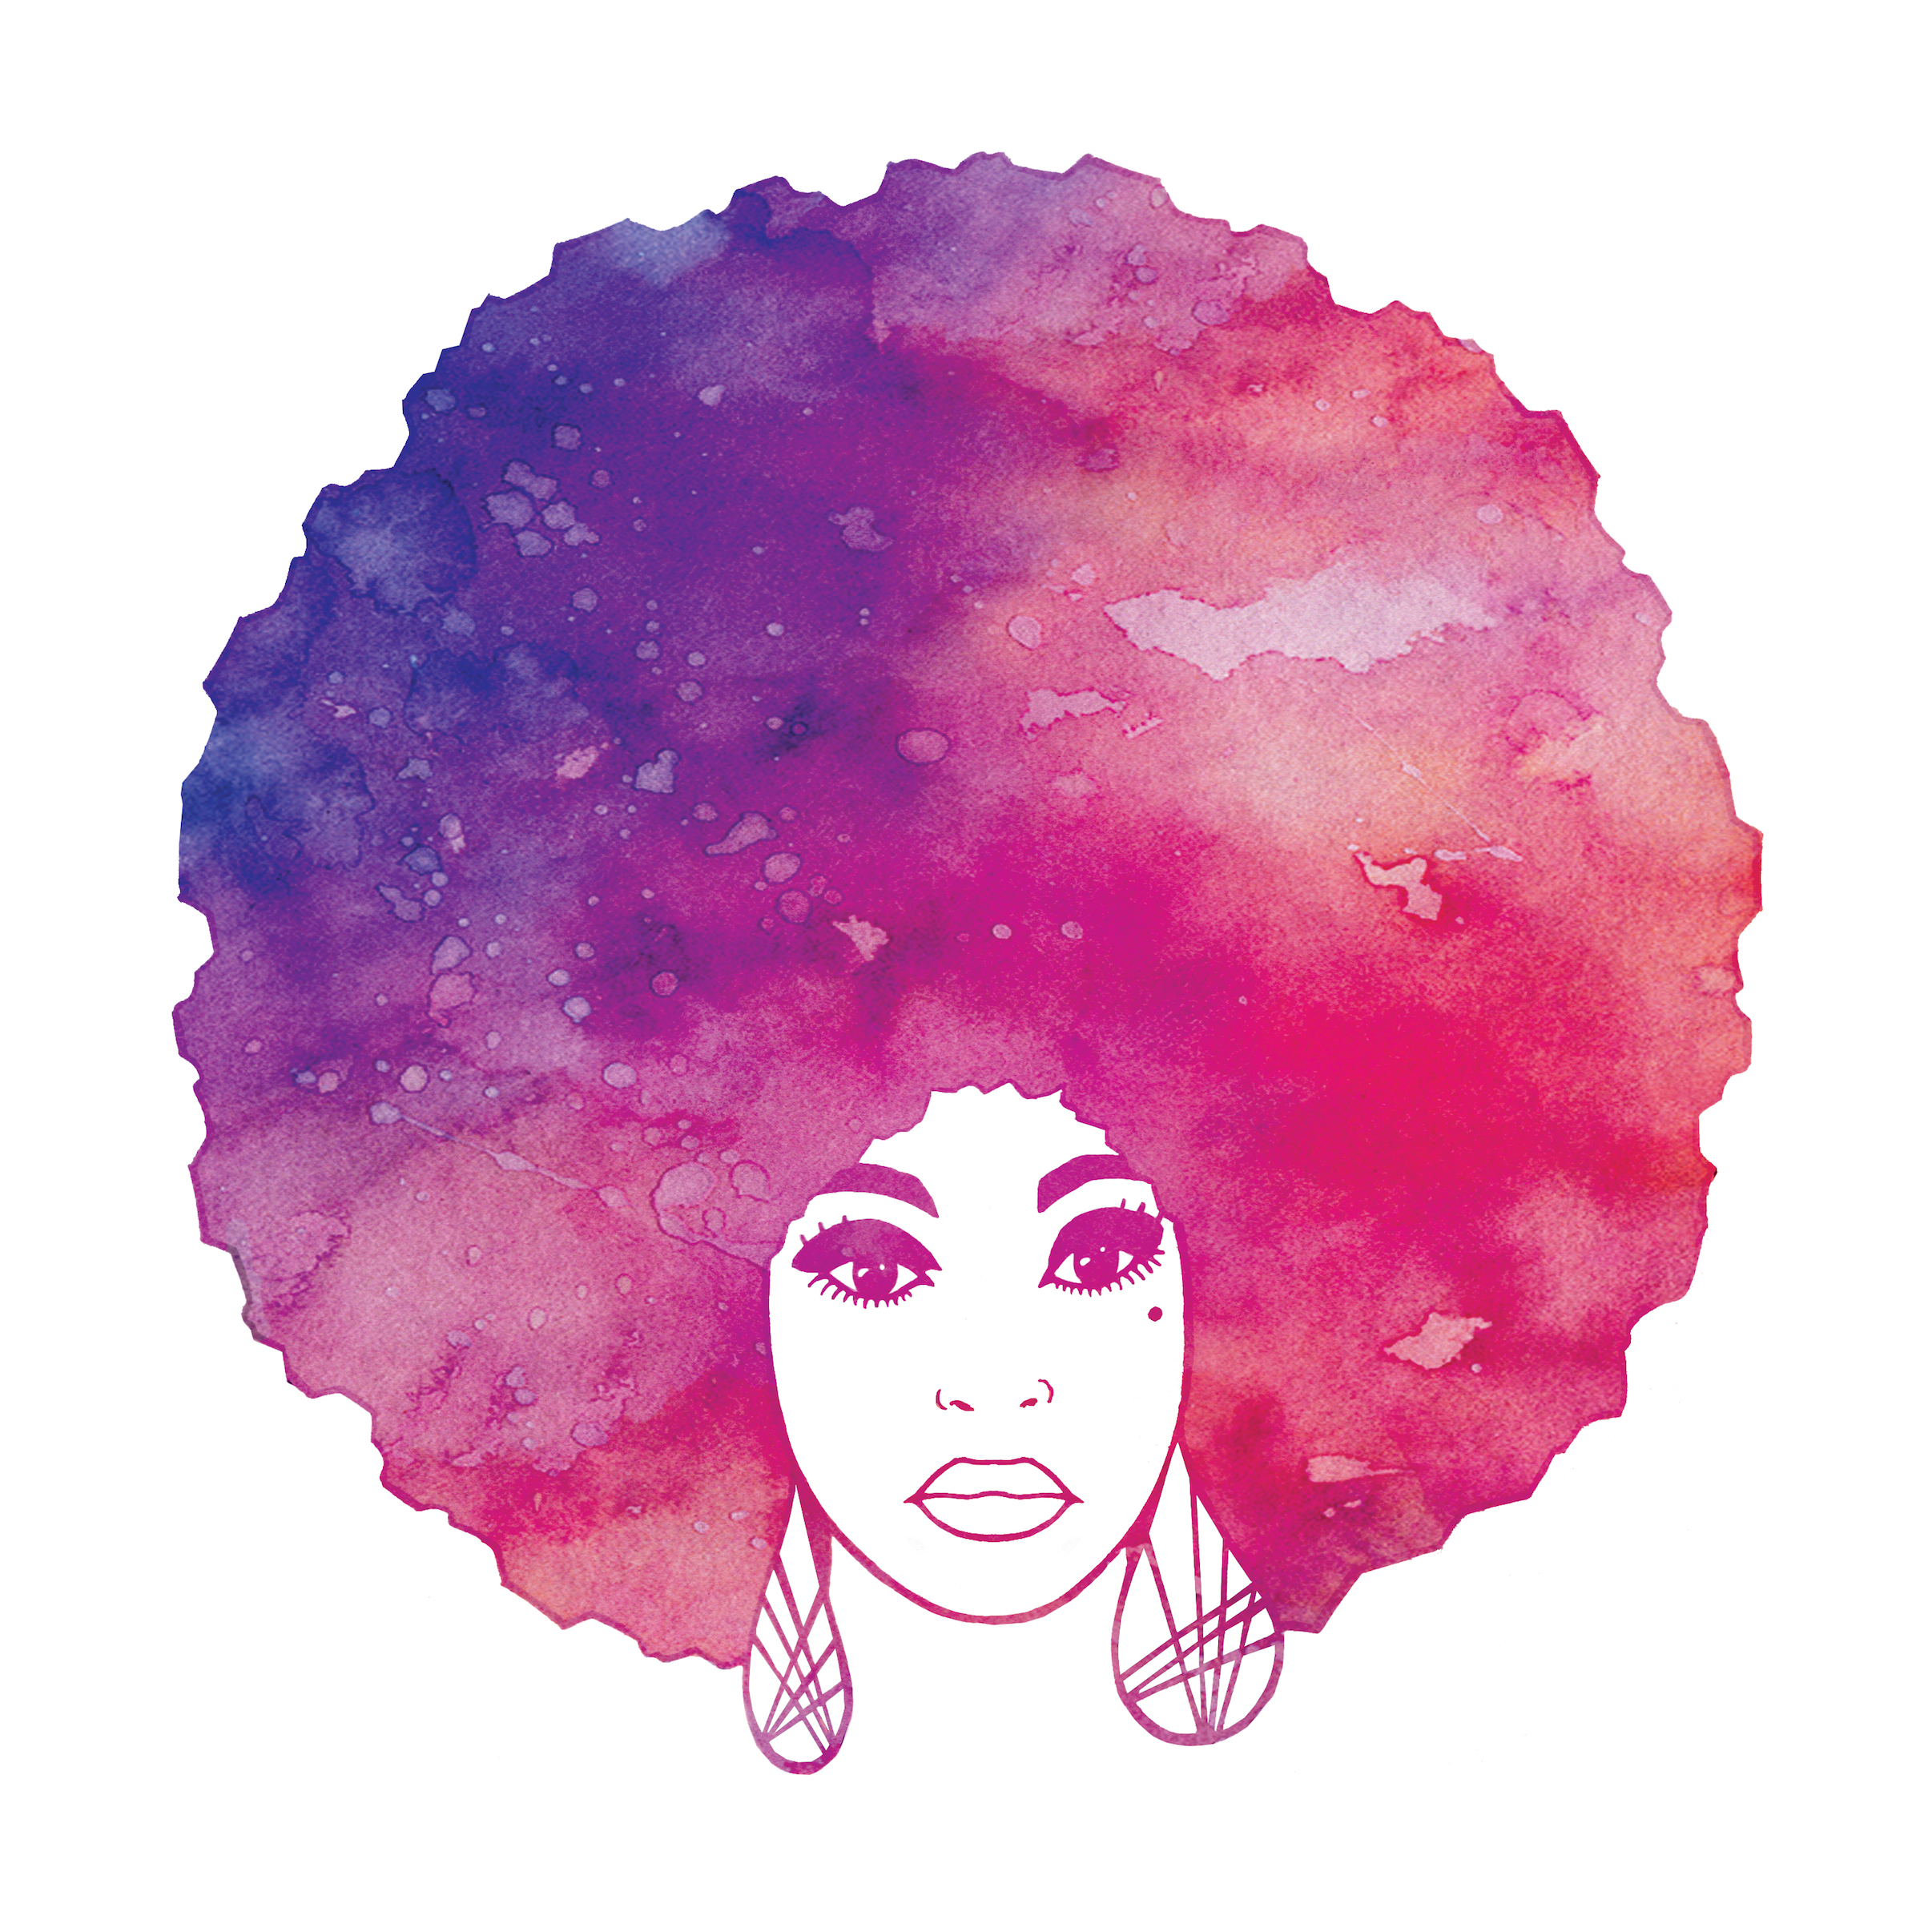 Afro Woman Watercolor fitted Tshirt  afro art watercolour pink purple graphic tee  ladies